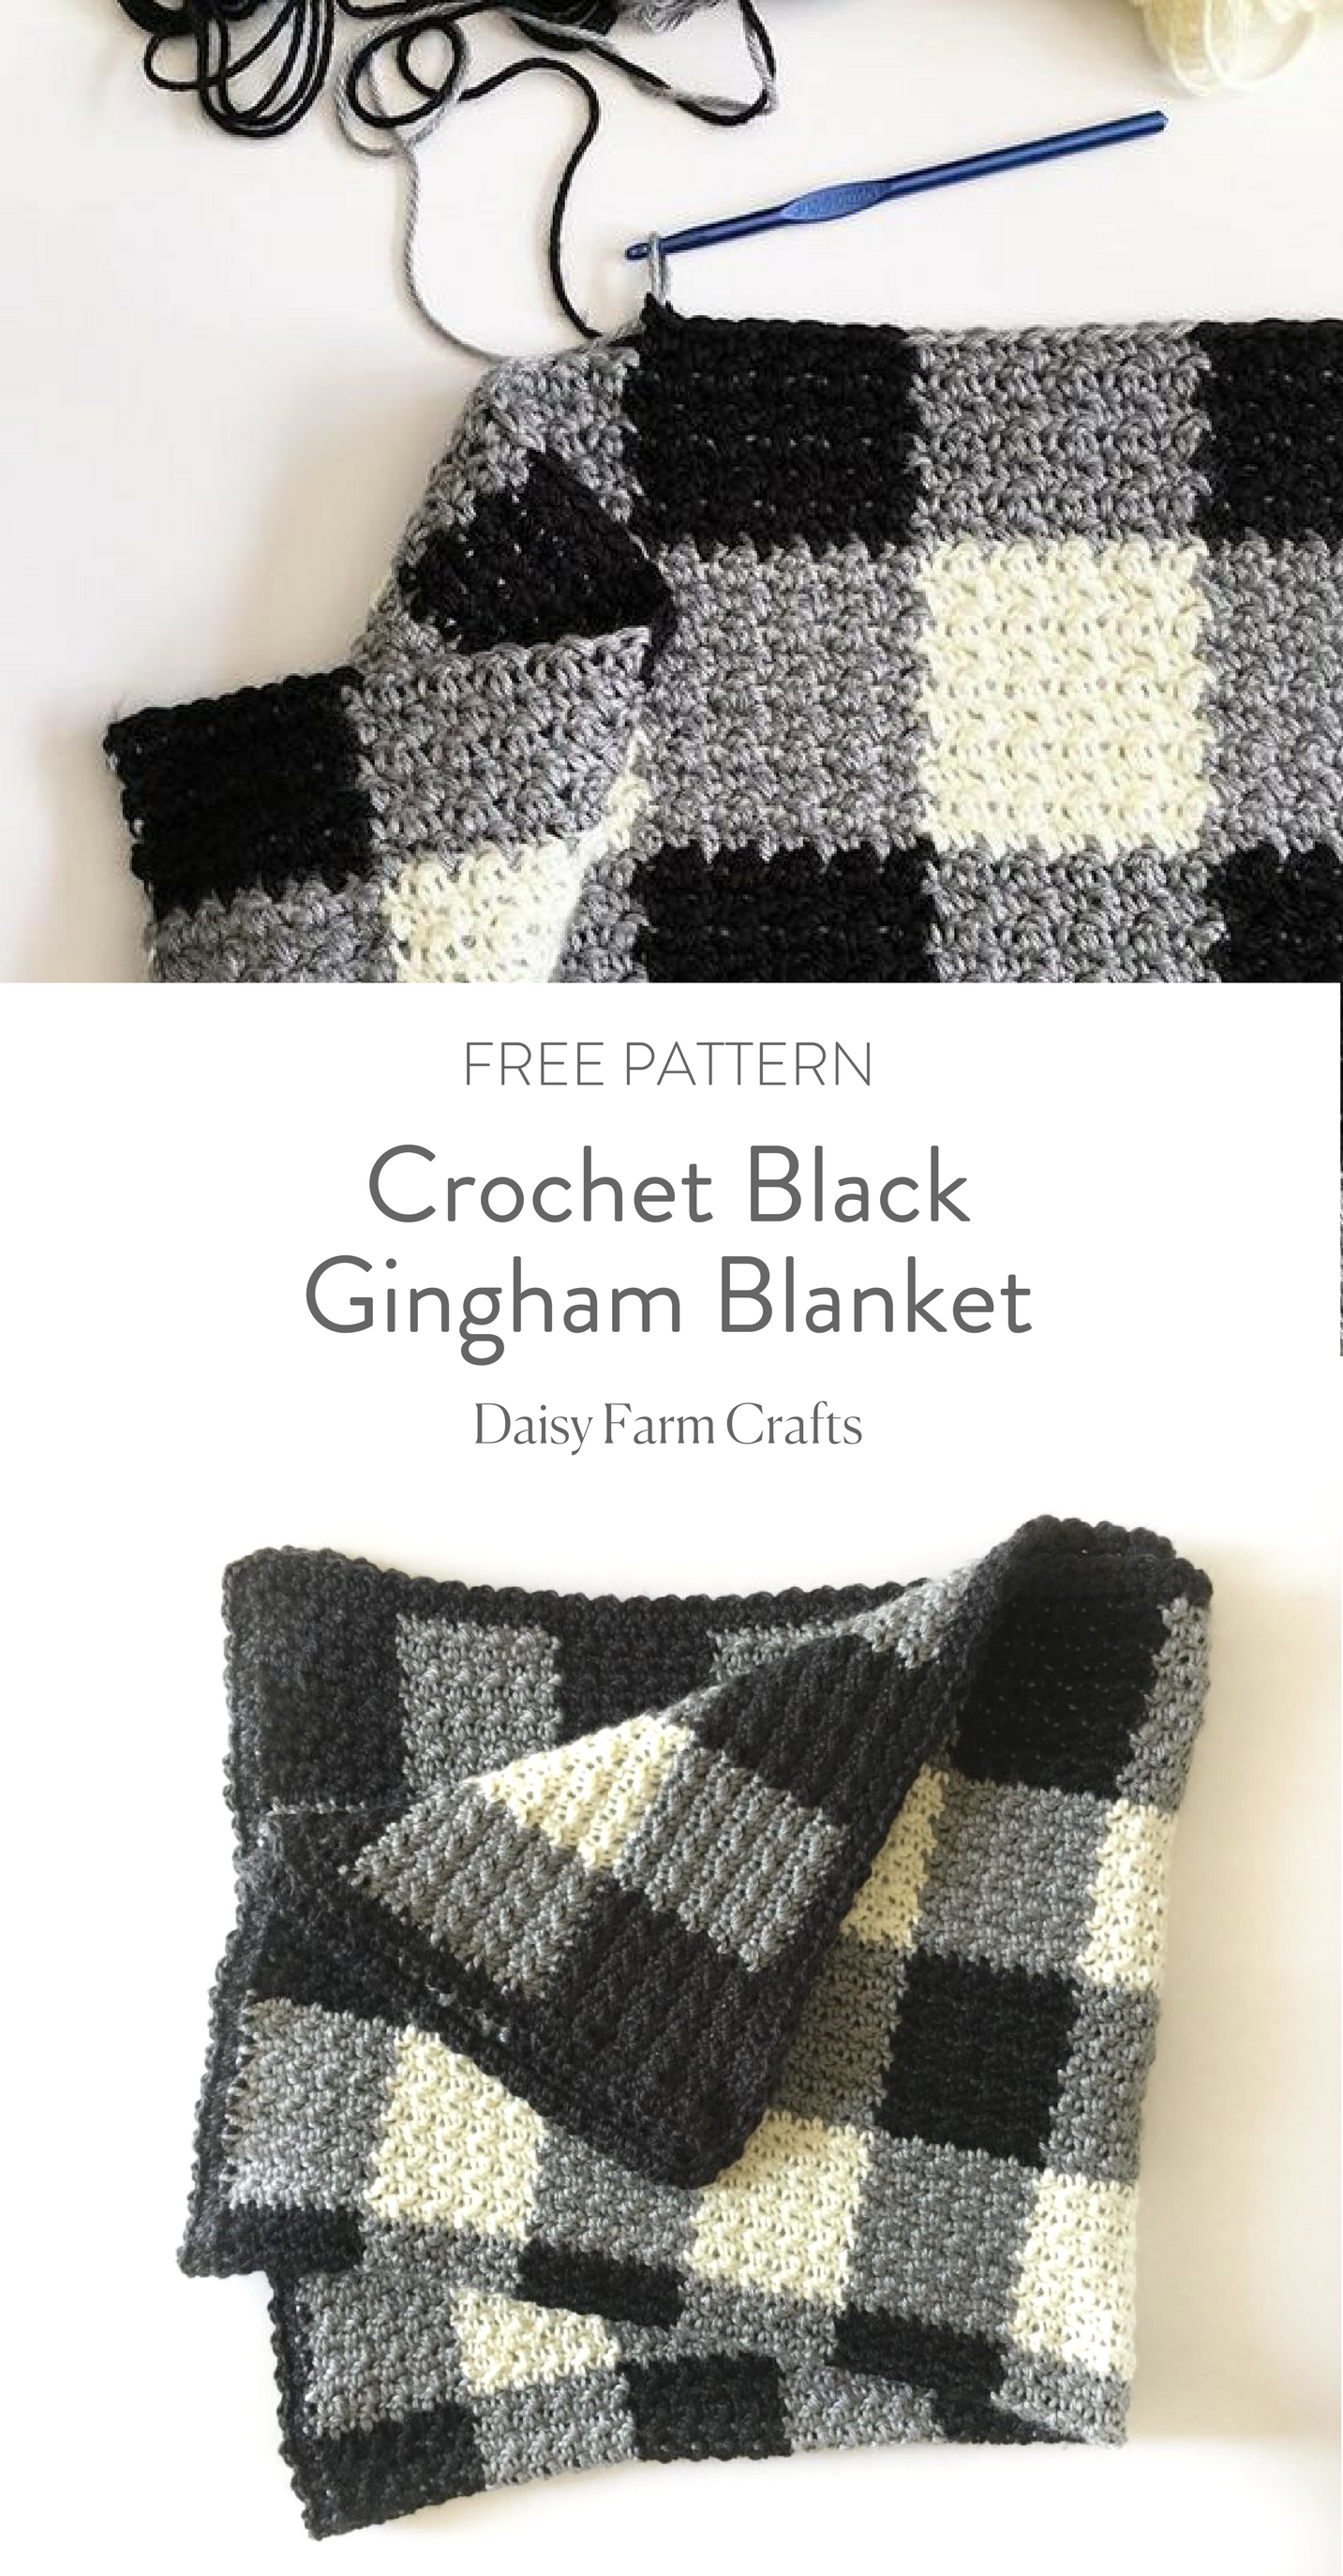 Crochet Black Gingham Blanket - Free Pattern | Knitting And Crochet ...